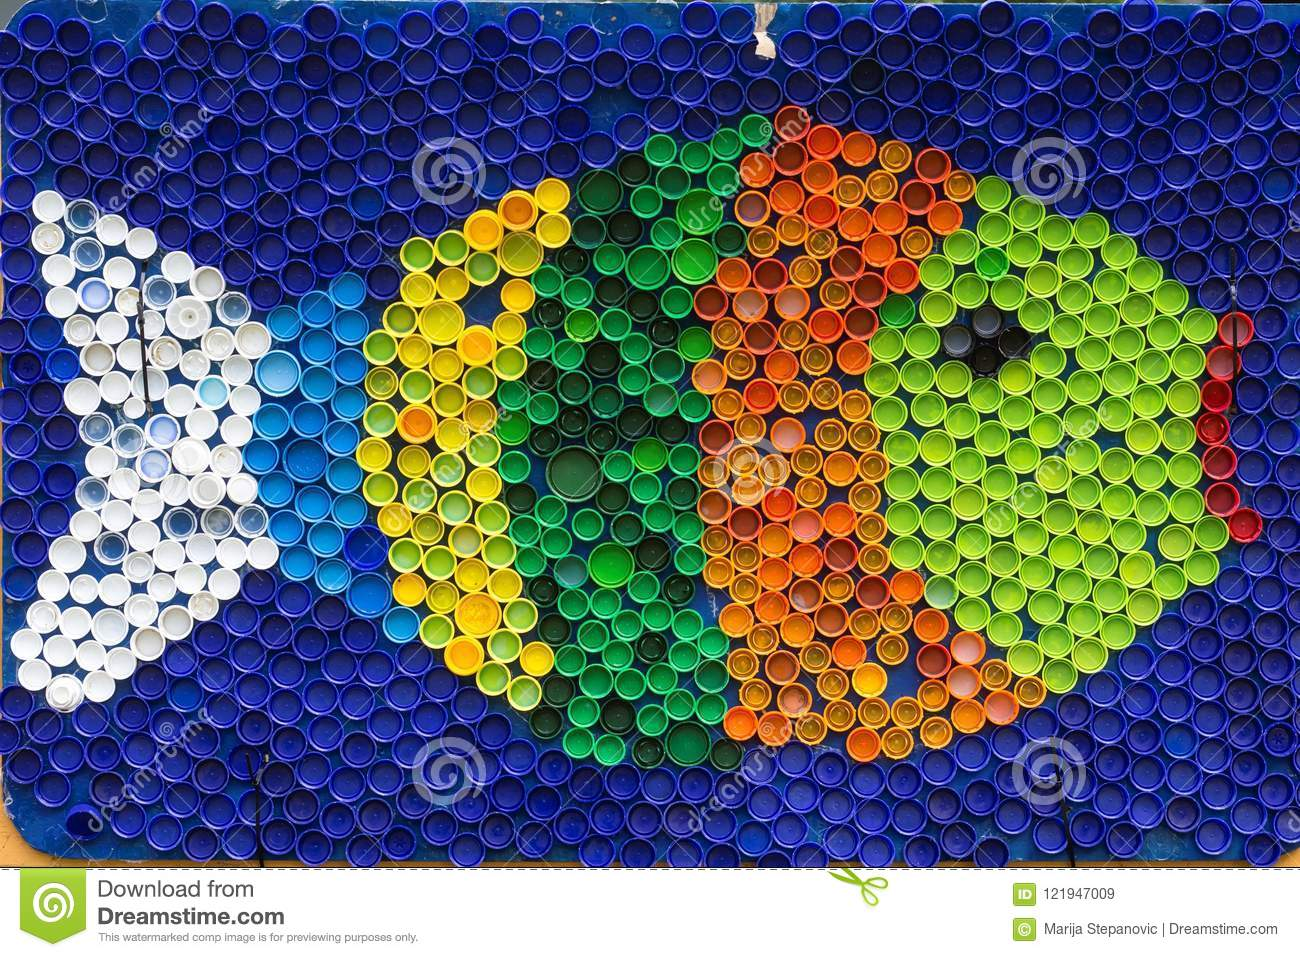 Fish mosaic deocoration made of cororful plastic bottle caps . S